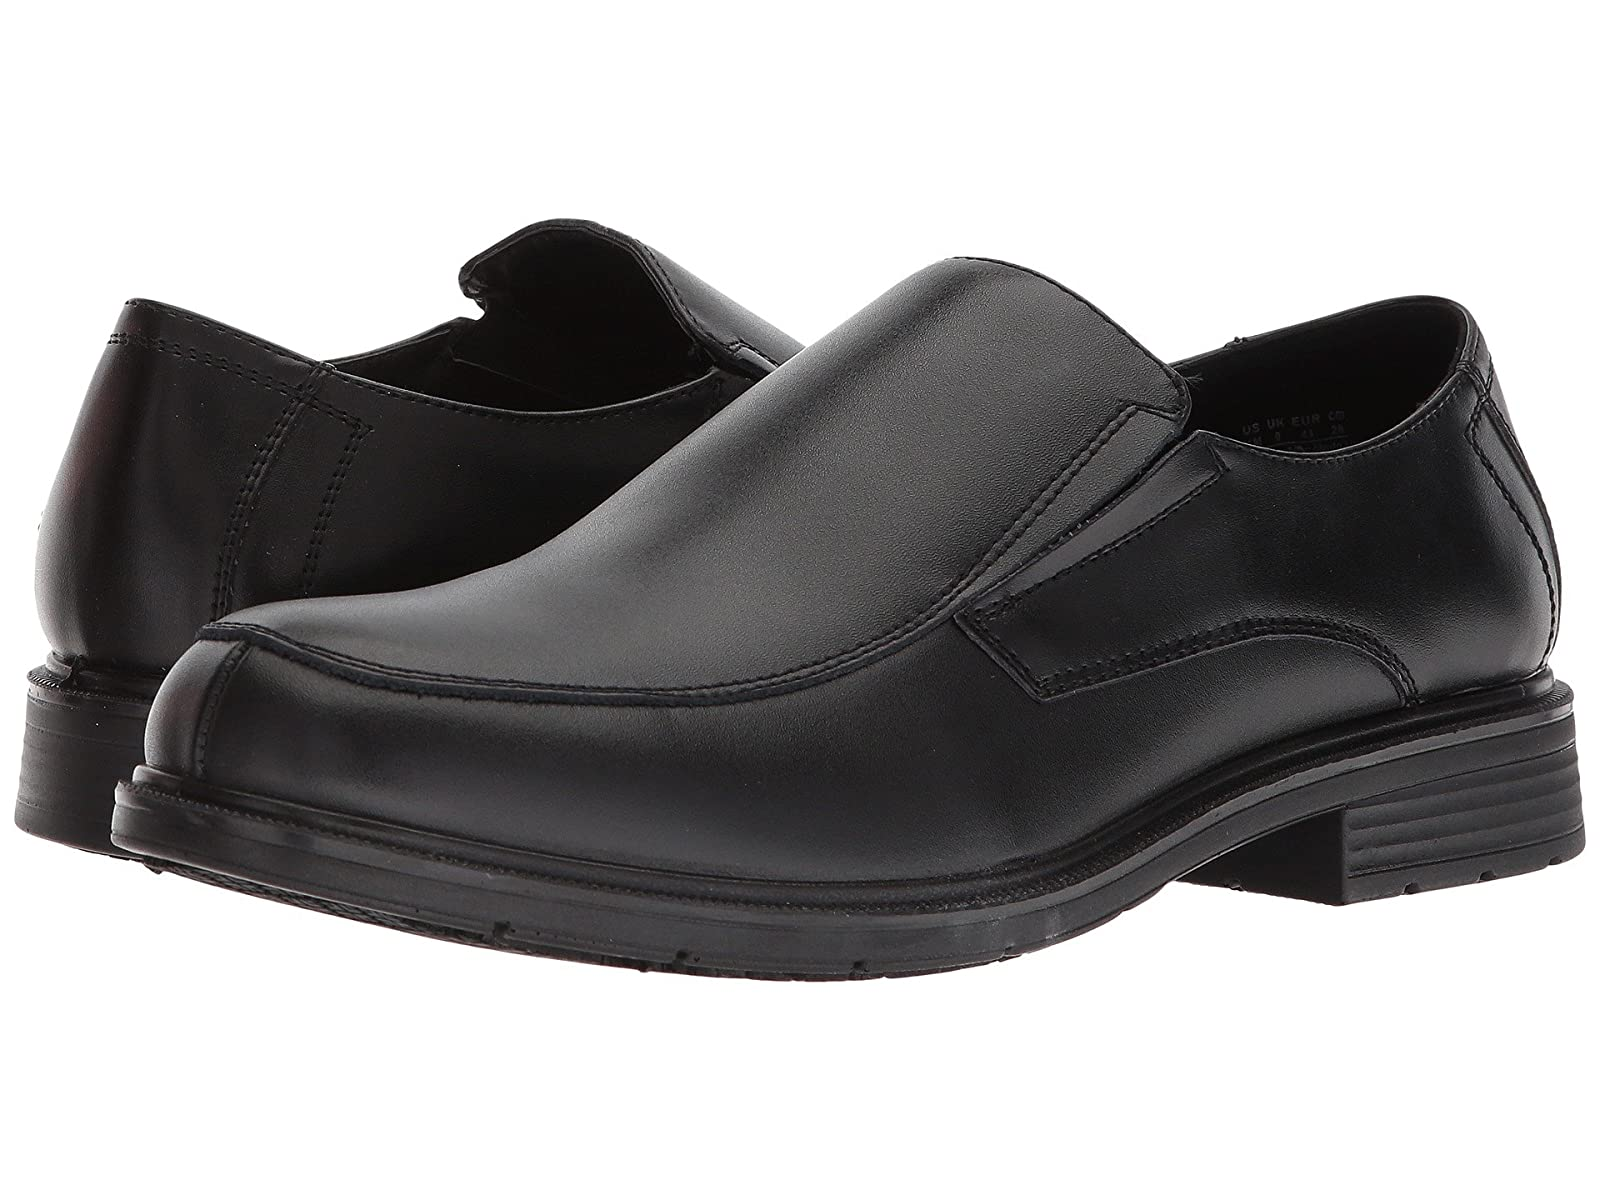 Dr. Scholl's Work JeffAtmospheric grades have affordable shoes